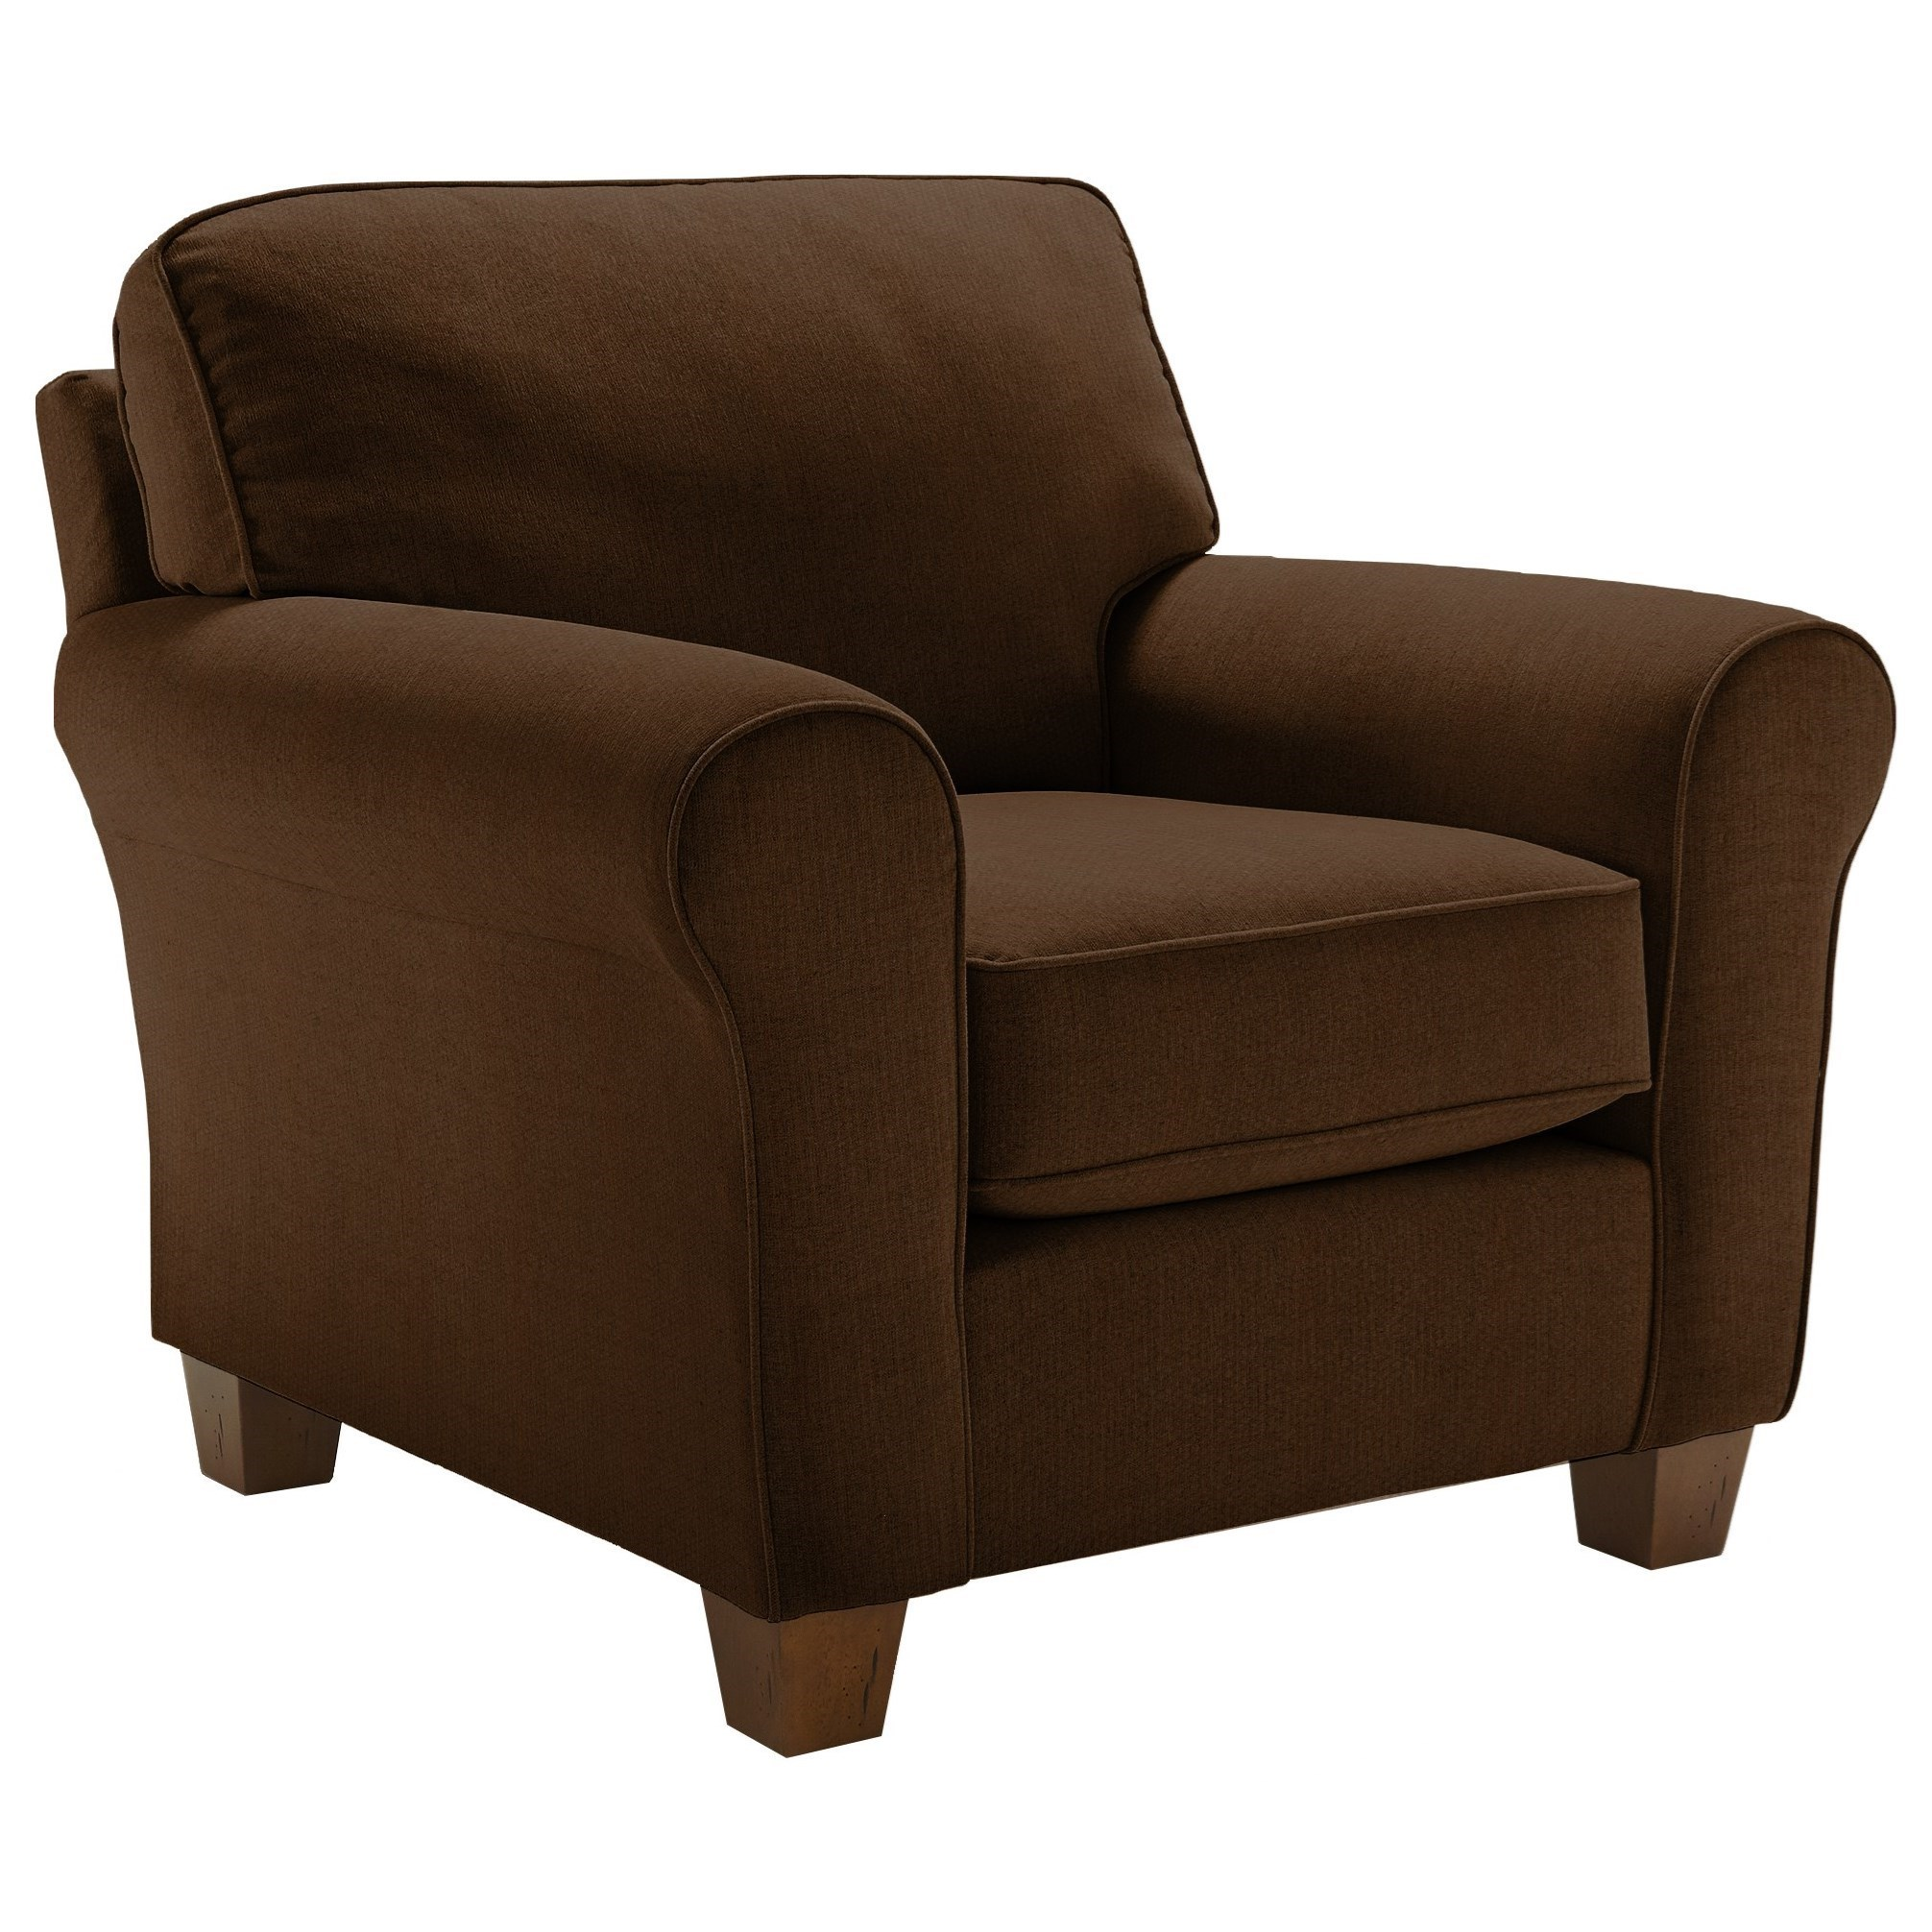 Annabel  Custom Chair by Best Home Furnishings at Lucas Furniture & Mattress